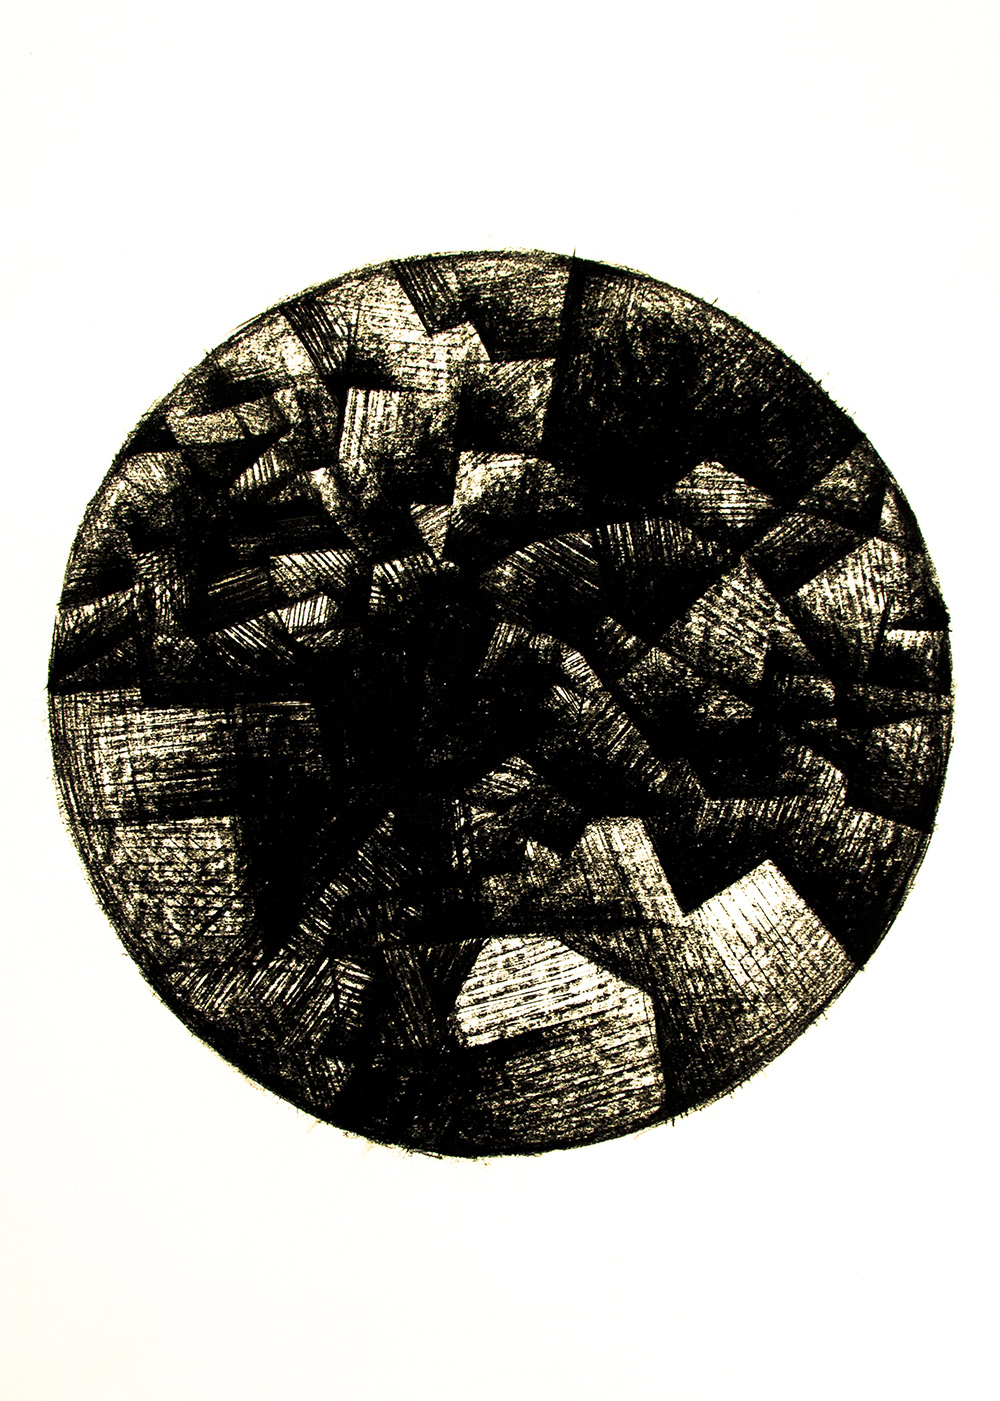 Untitled, 2014, Charcoal on paper, 75 cm × 55 cm